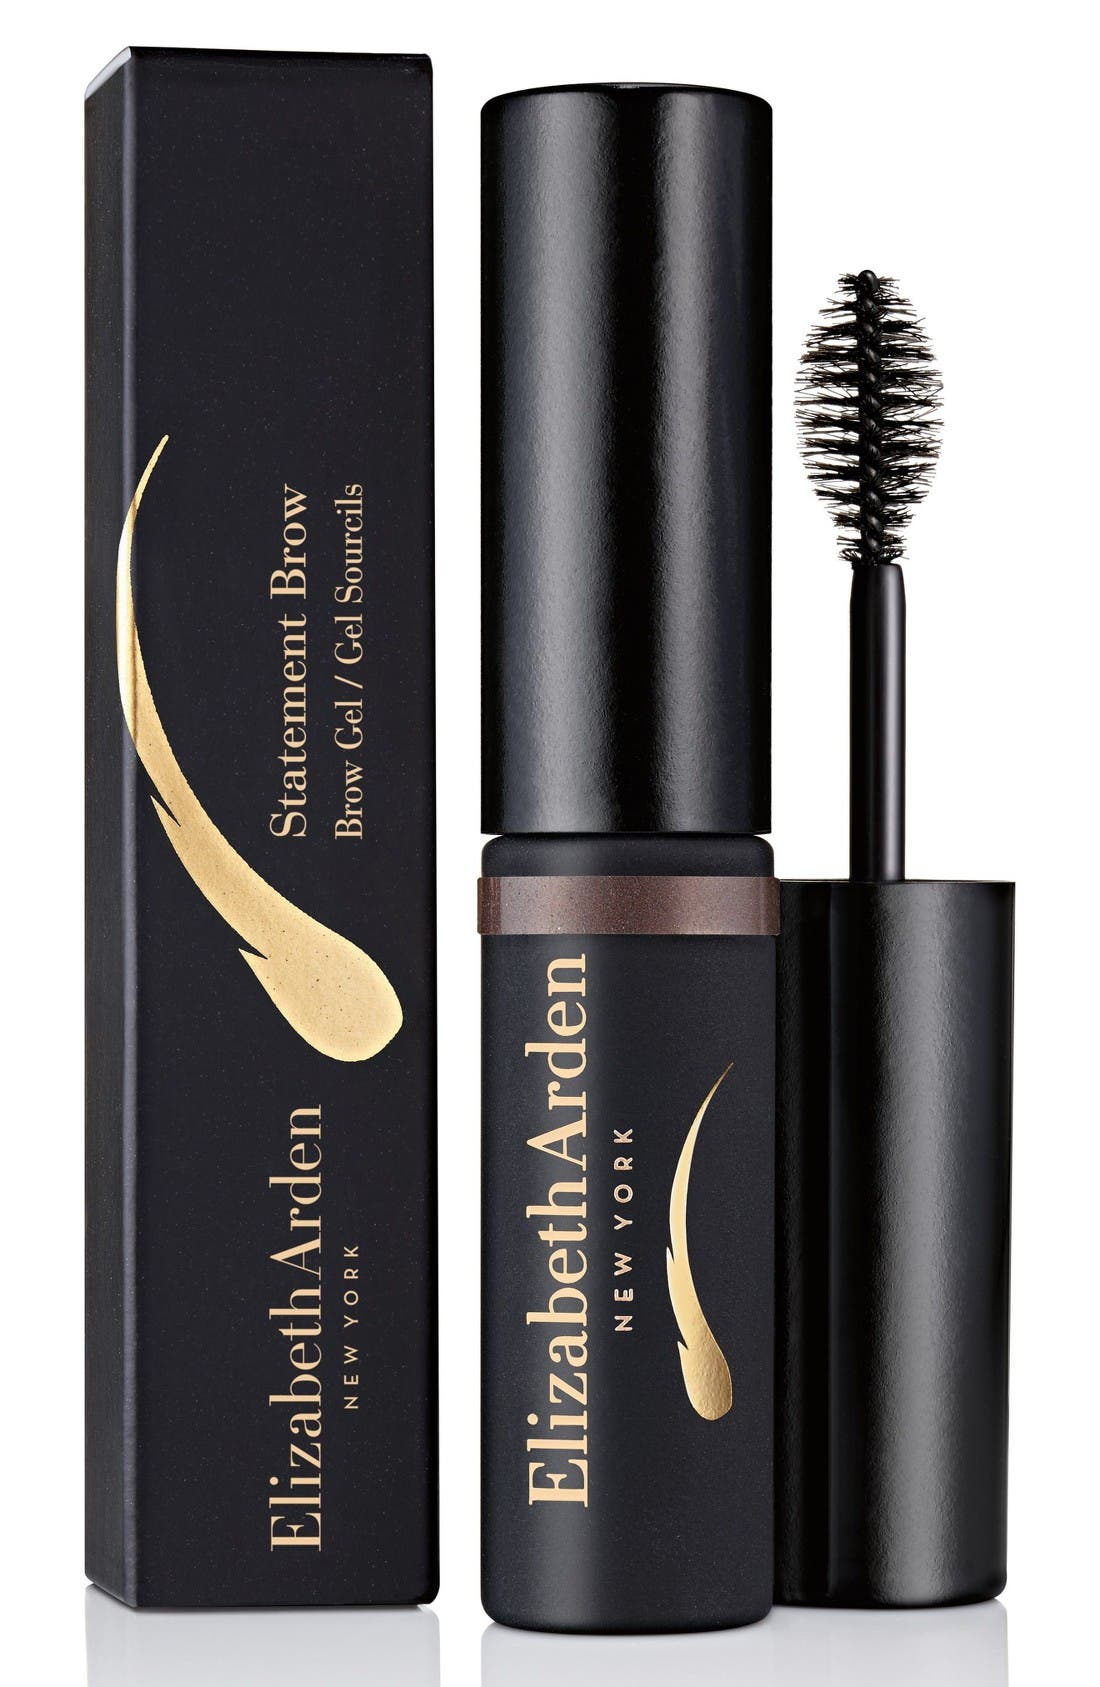 Alternate Image 1 Selected - Elizabeth Arden Eyes Wide Open Statement Brow Defining Gel